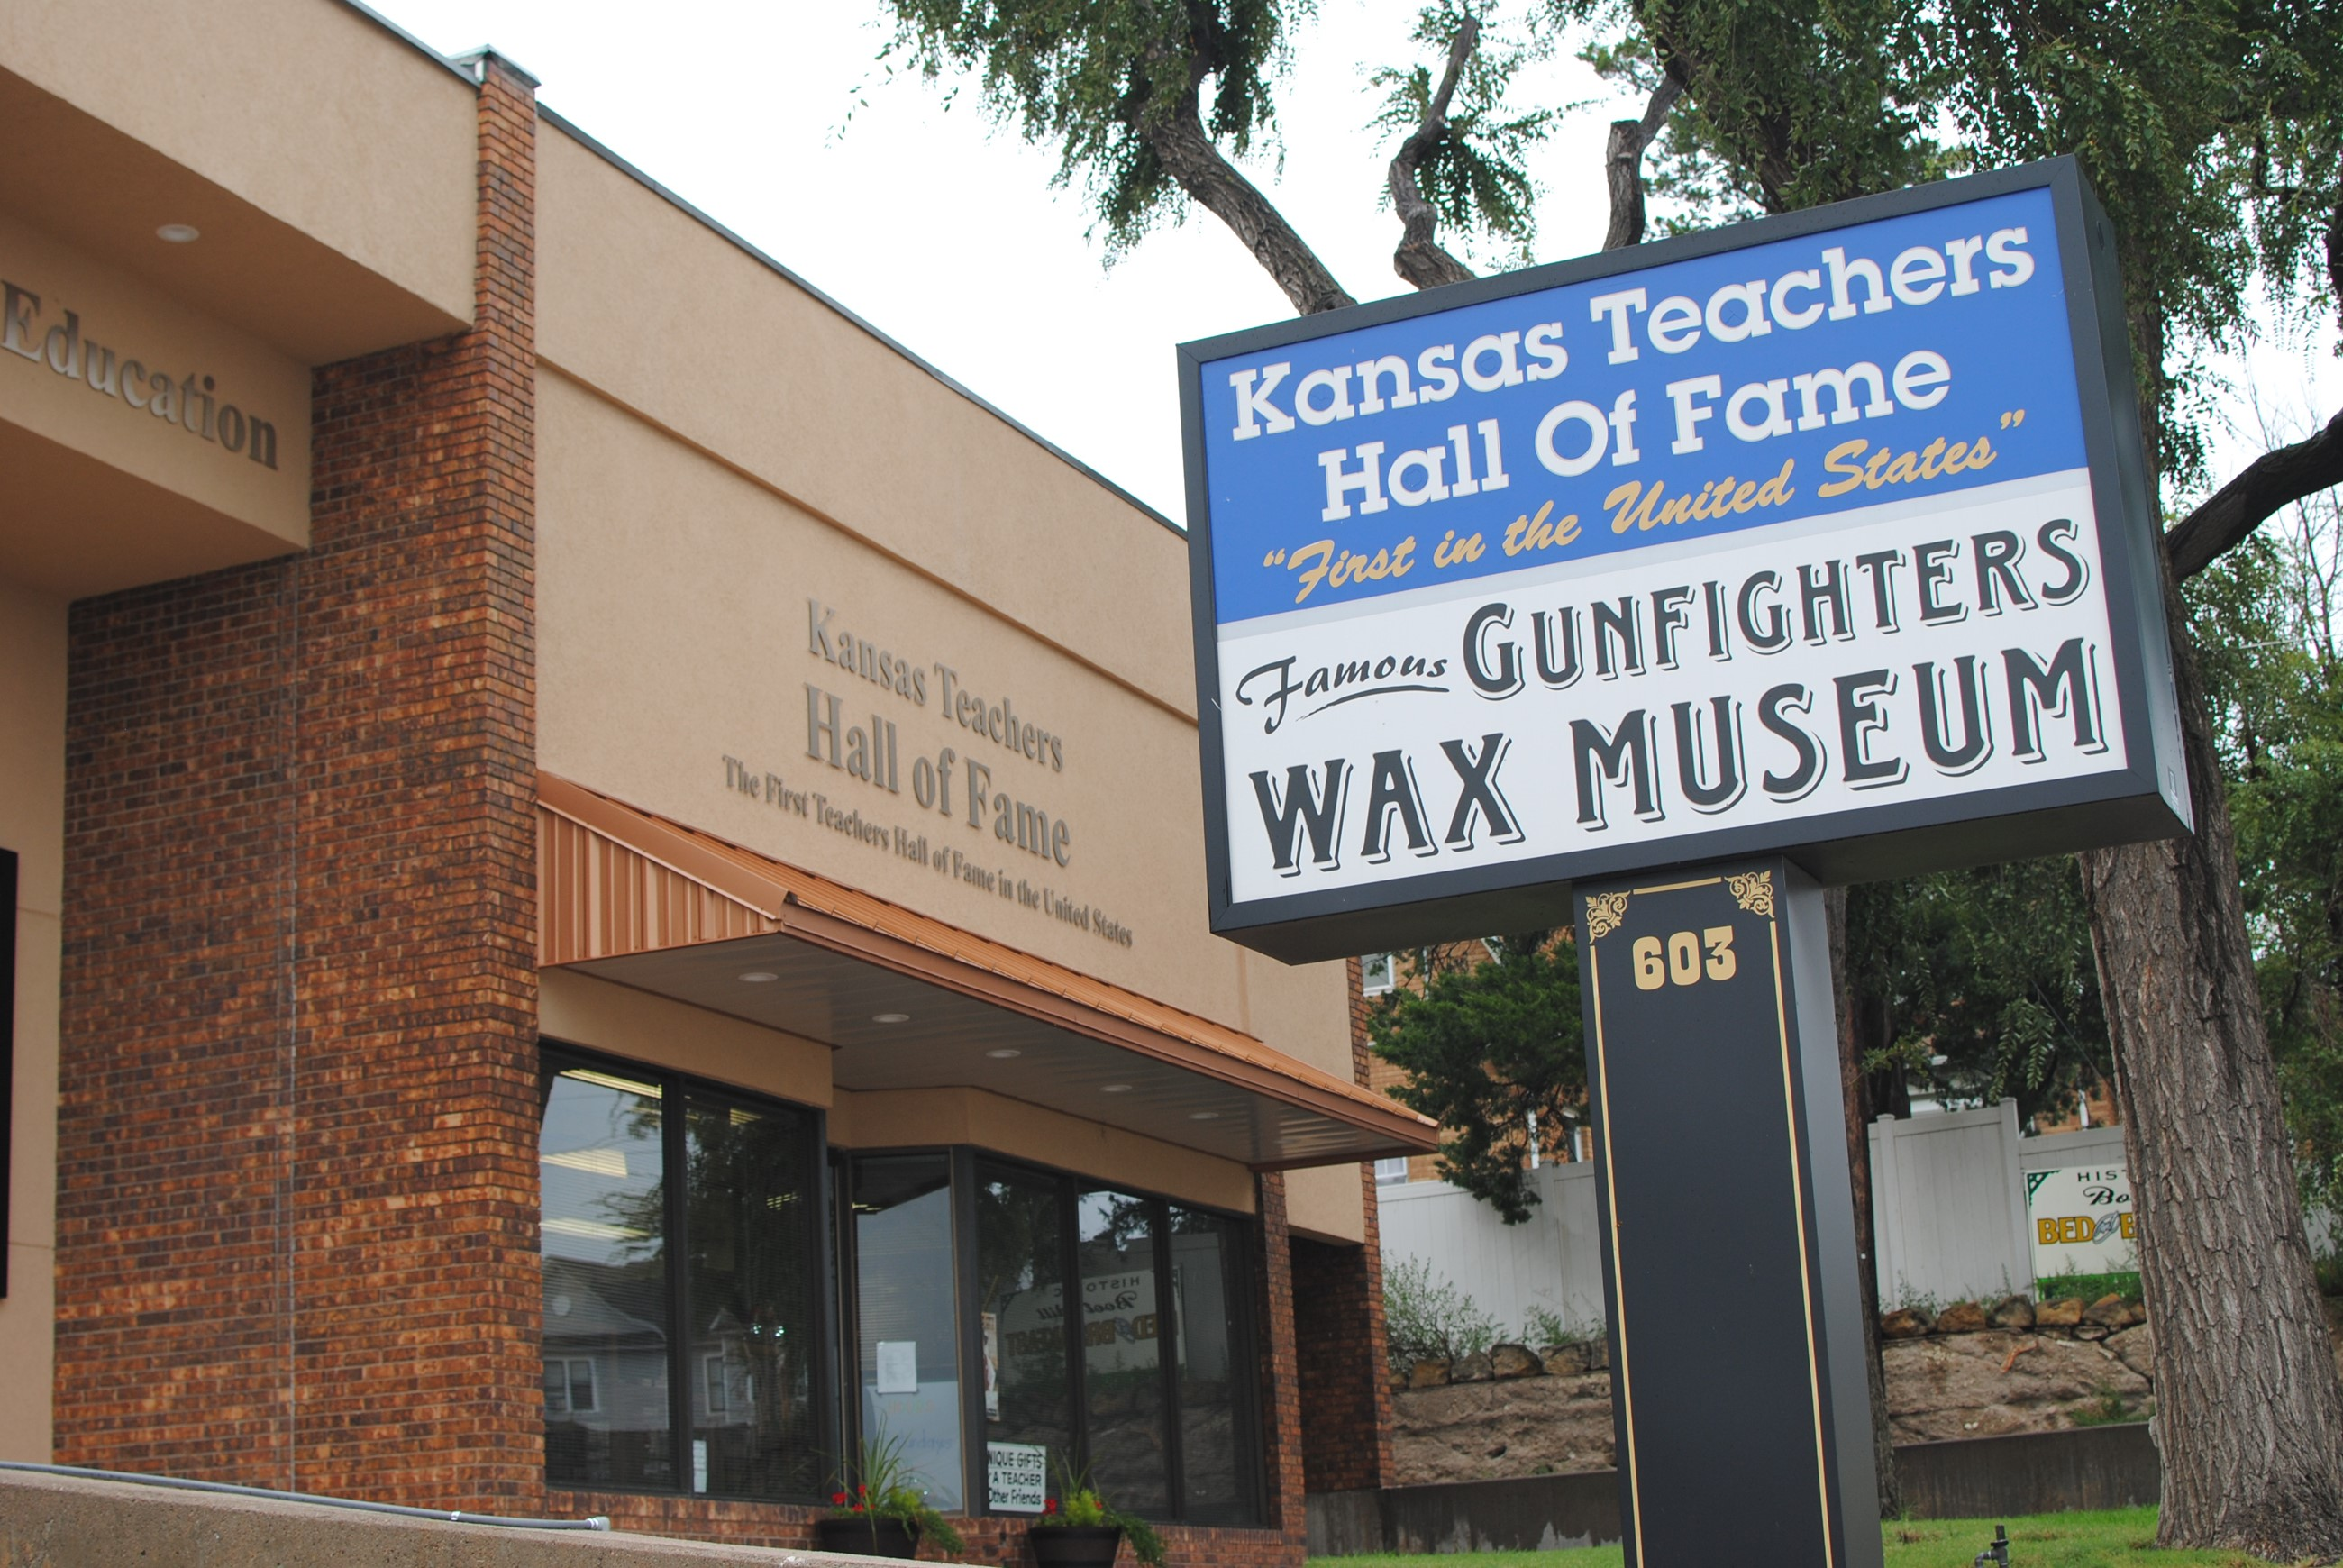 Kansas Teachers Hall of Fame Gunfighters Wax Museaum Sign